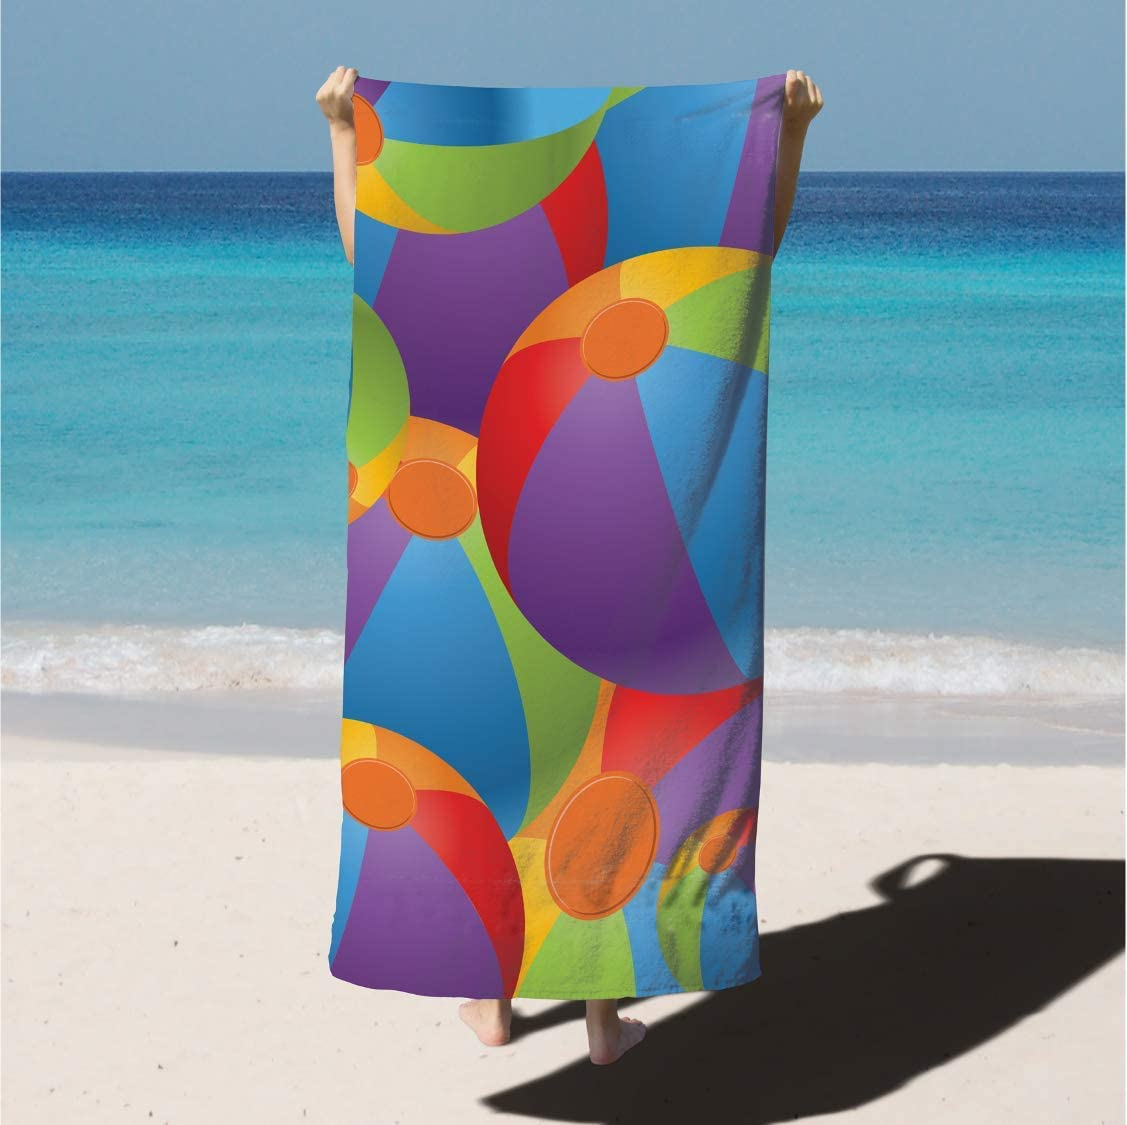 Arkwright LLC Velour Printed Beach Towel, 100% Cotton Super Absorbent Quick Drying Pool Towel (30x60 in., Flip-Flops)